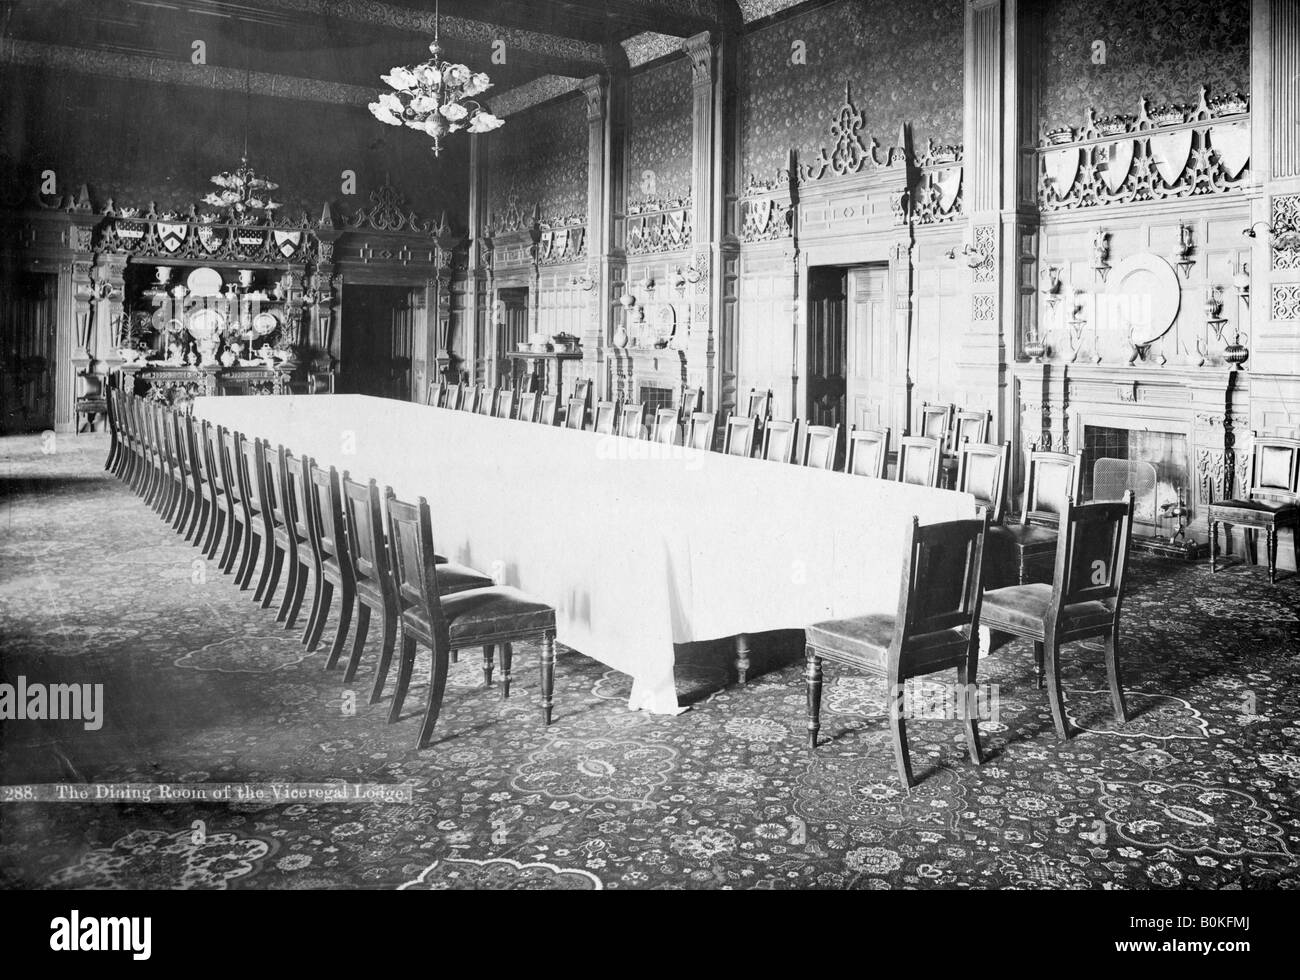 Banqueting room stockfotos banqueting room bilder alamy for Innenarchitektur 20 jahrhundert